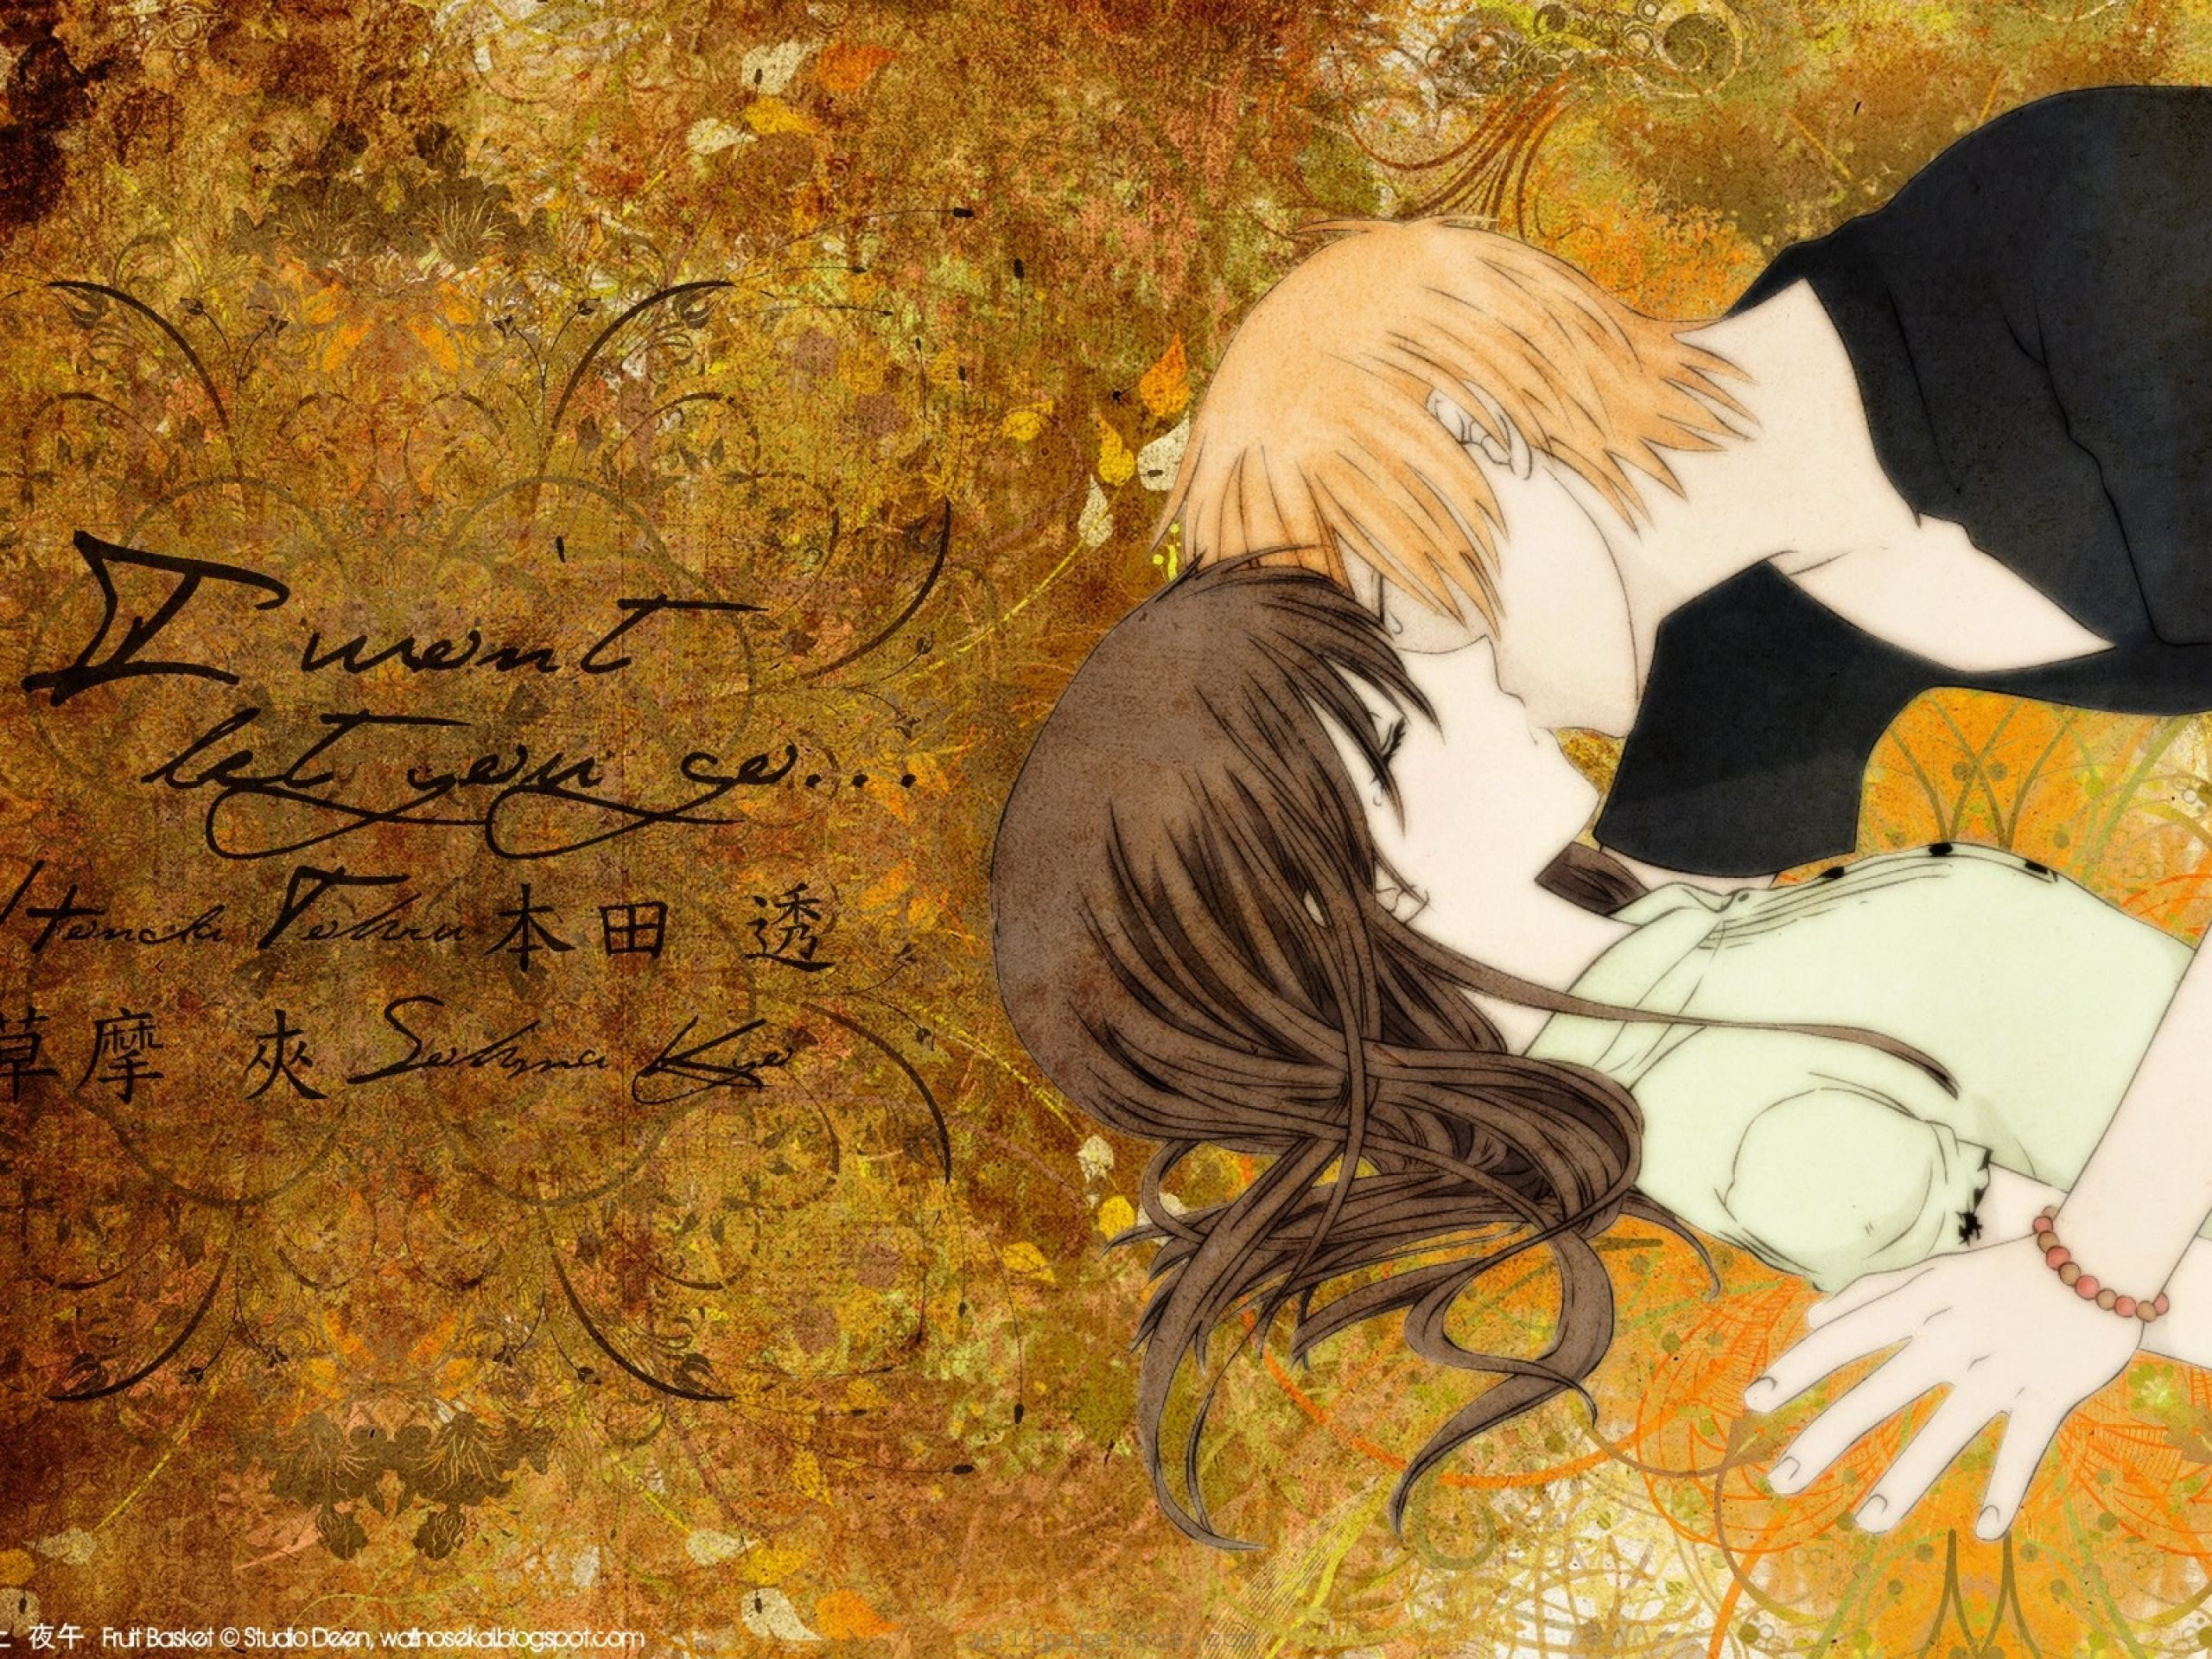 Res: 2560x1920, Fruits Basket wallpapers HD